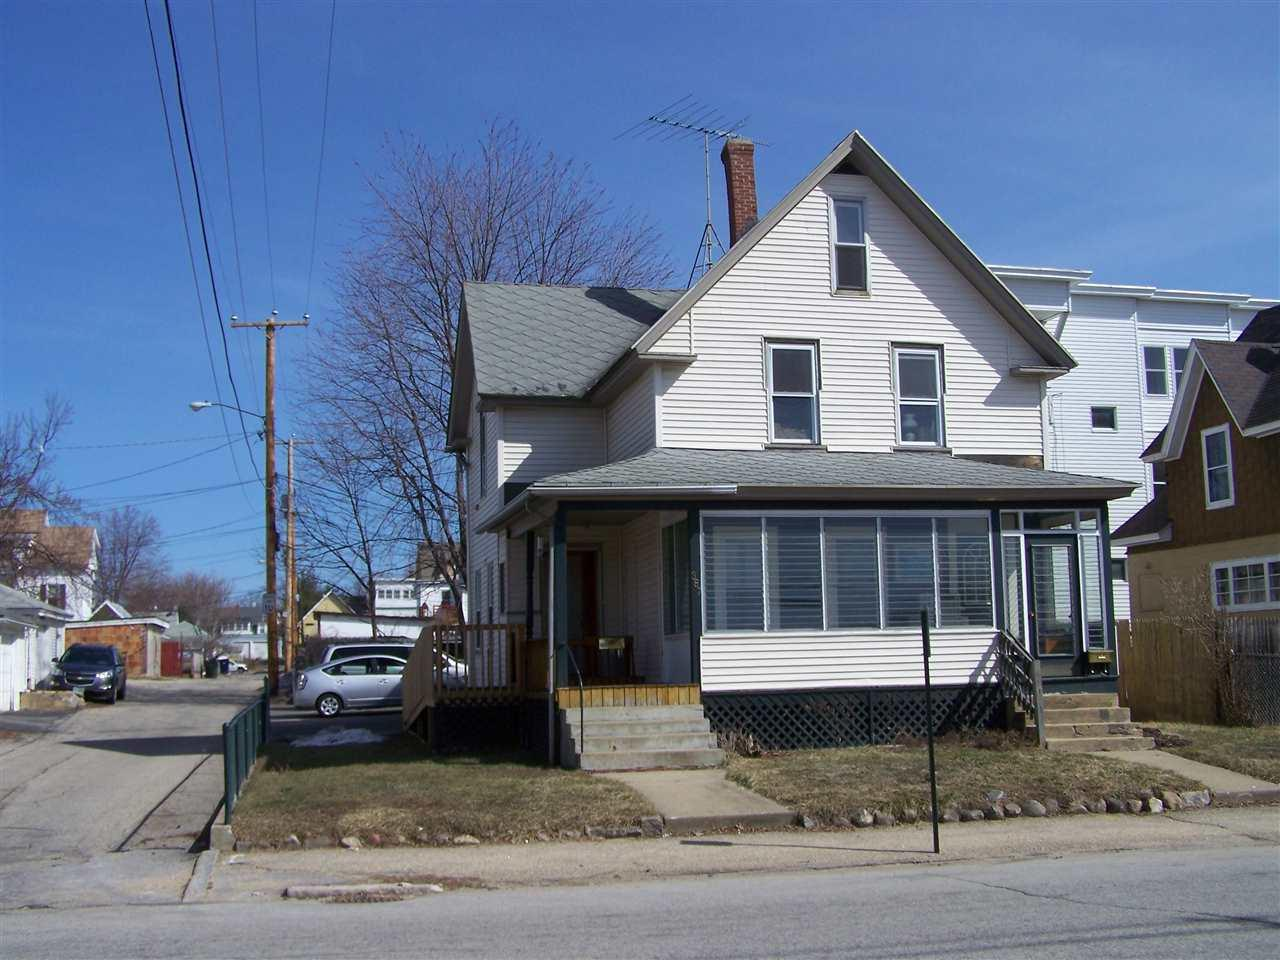 387 Wilson St Manchester Nh Mls 4627298 Better Homes And Gardens Real Estate